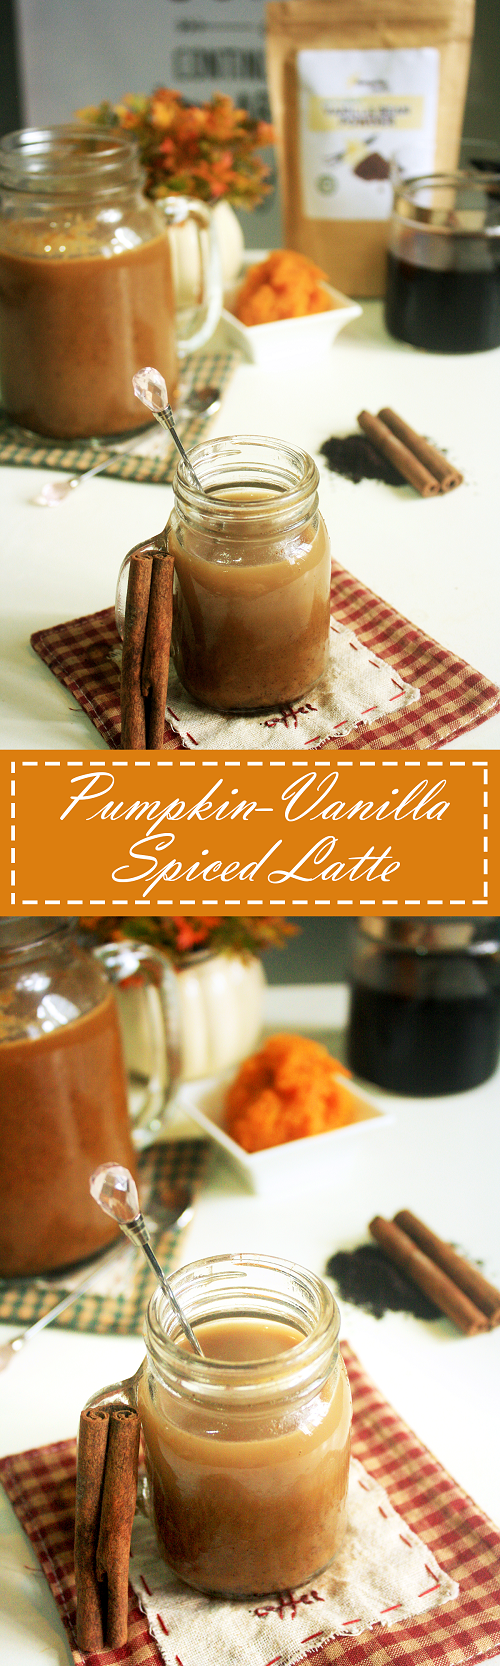 Pumpkin-Vanilla Spiced Latte Recipe - Summer Day Naturals